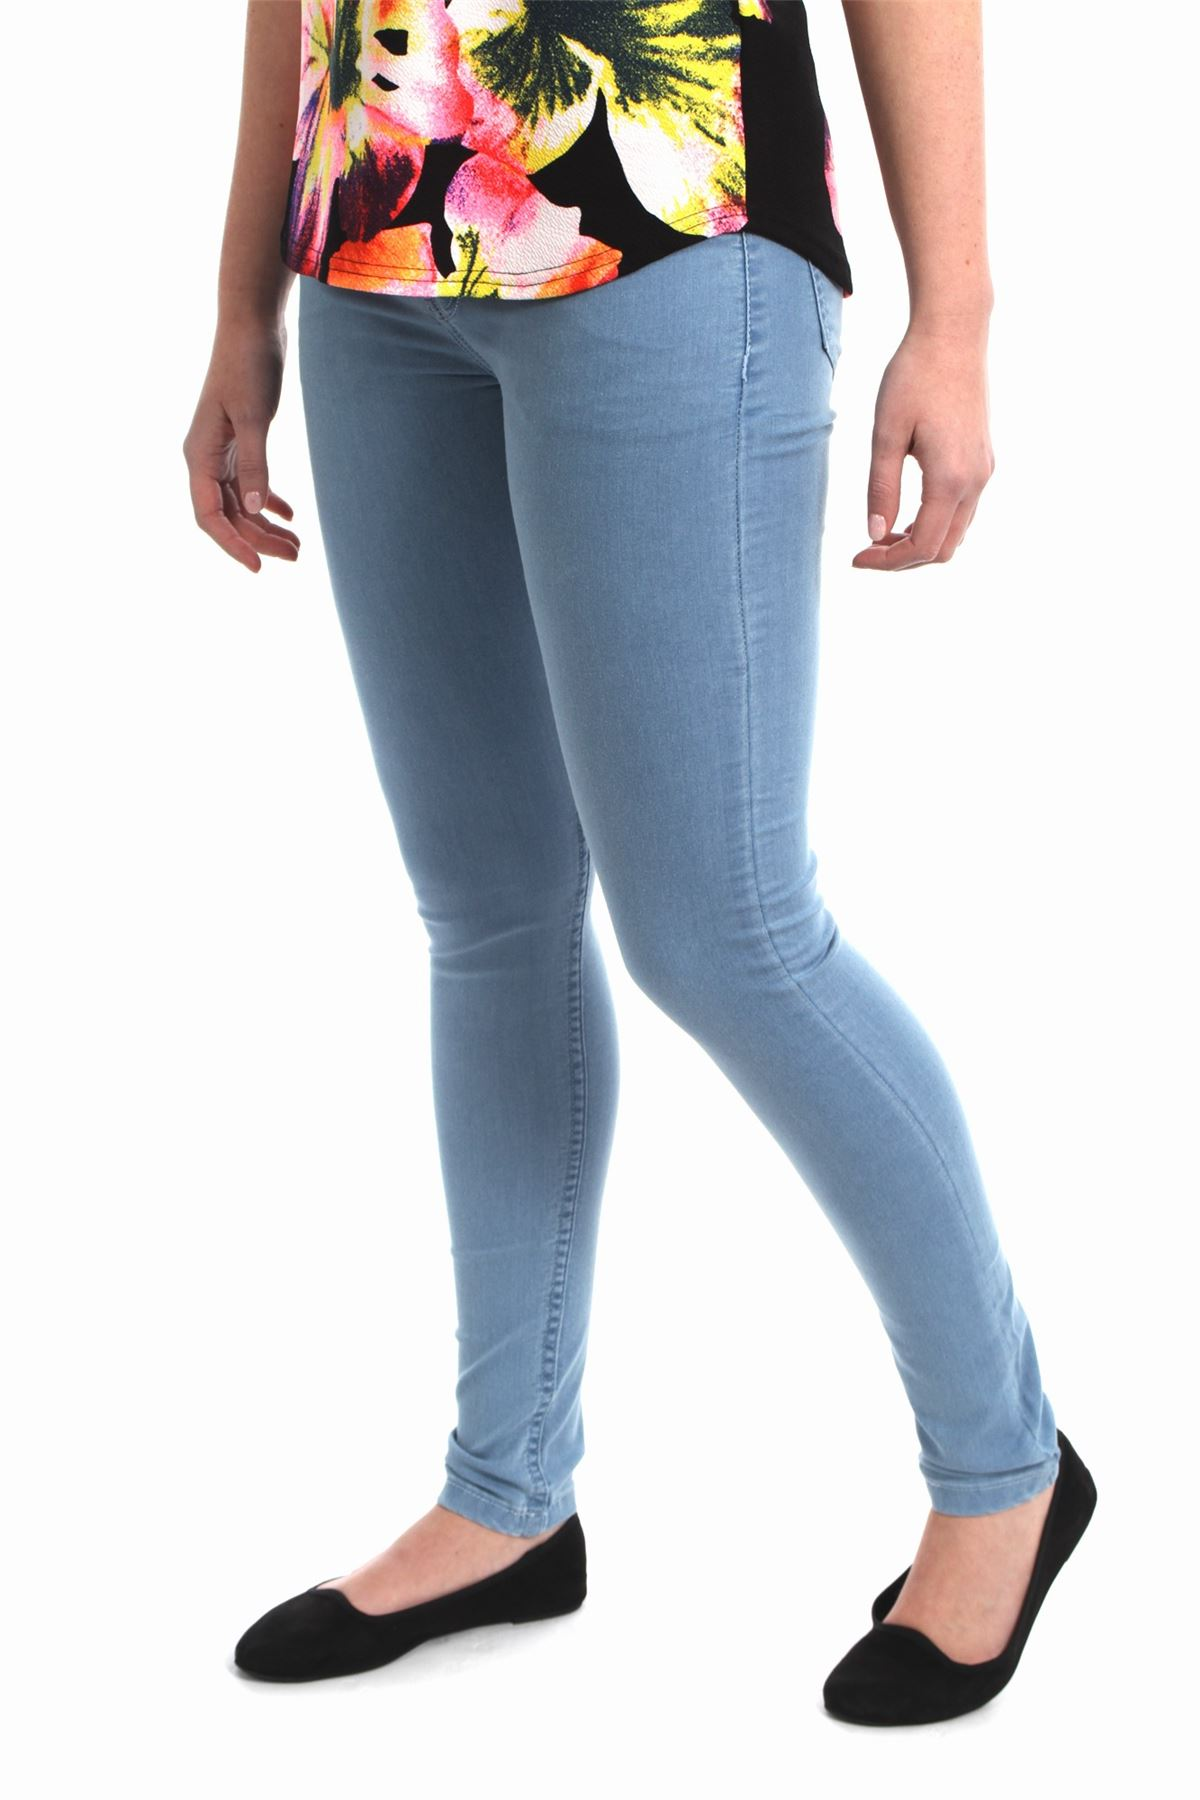 Pant leg styles in girls' jeans Pant legs have become like an artist's canvas, and girls' jeans offer a variety of styles, including distressed, embroidered, studded, and more. It's easy to get excited about the decorative aspects of jeans, but comfort is important, too.